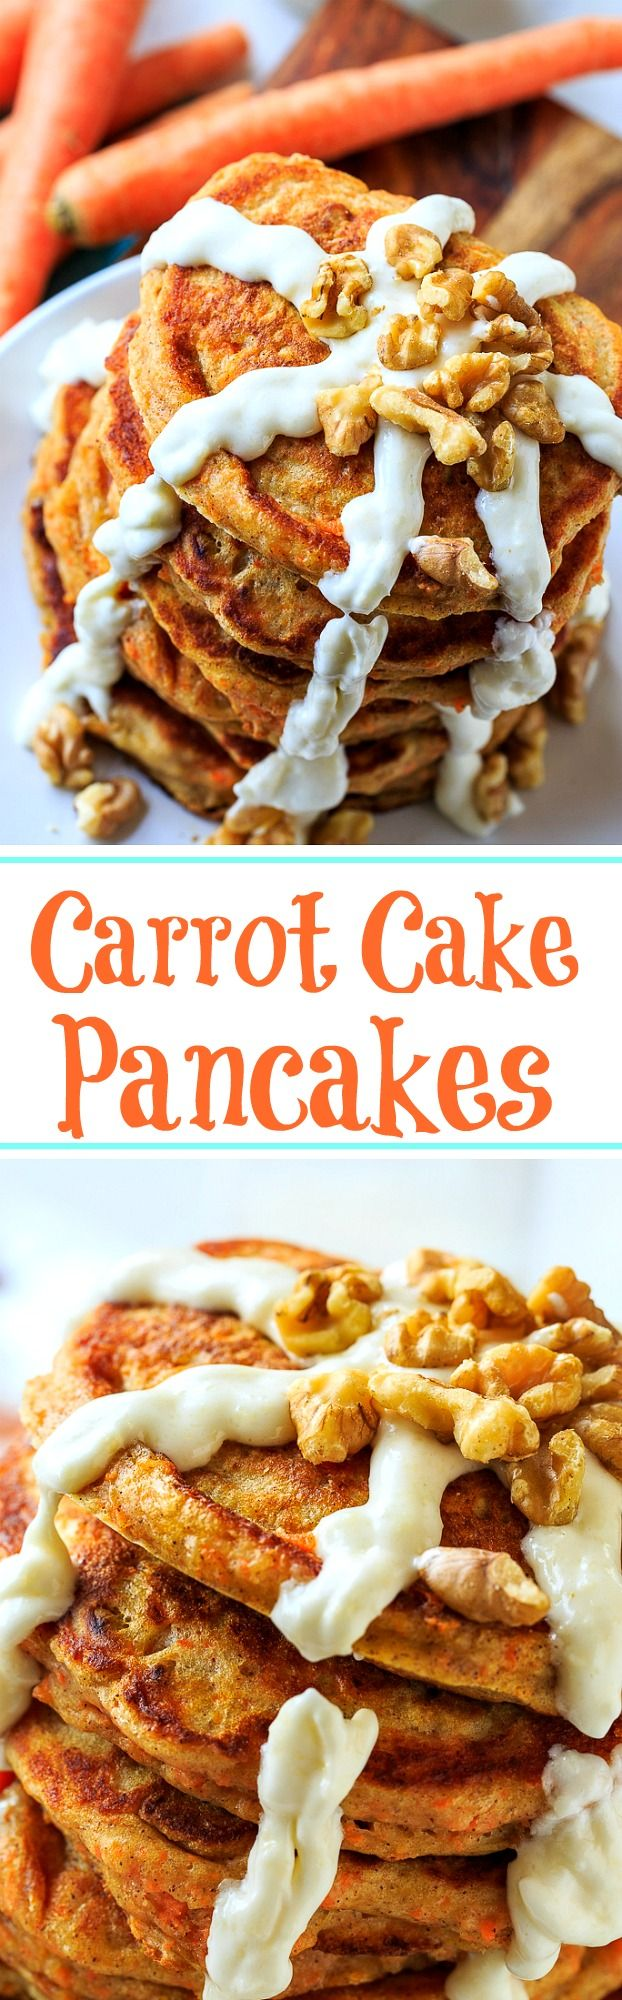 Carrot Cake Pancakes with Cream Cheese Glaze and toasted walnuts.: